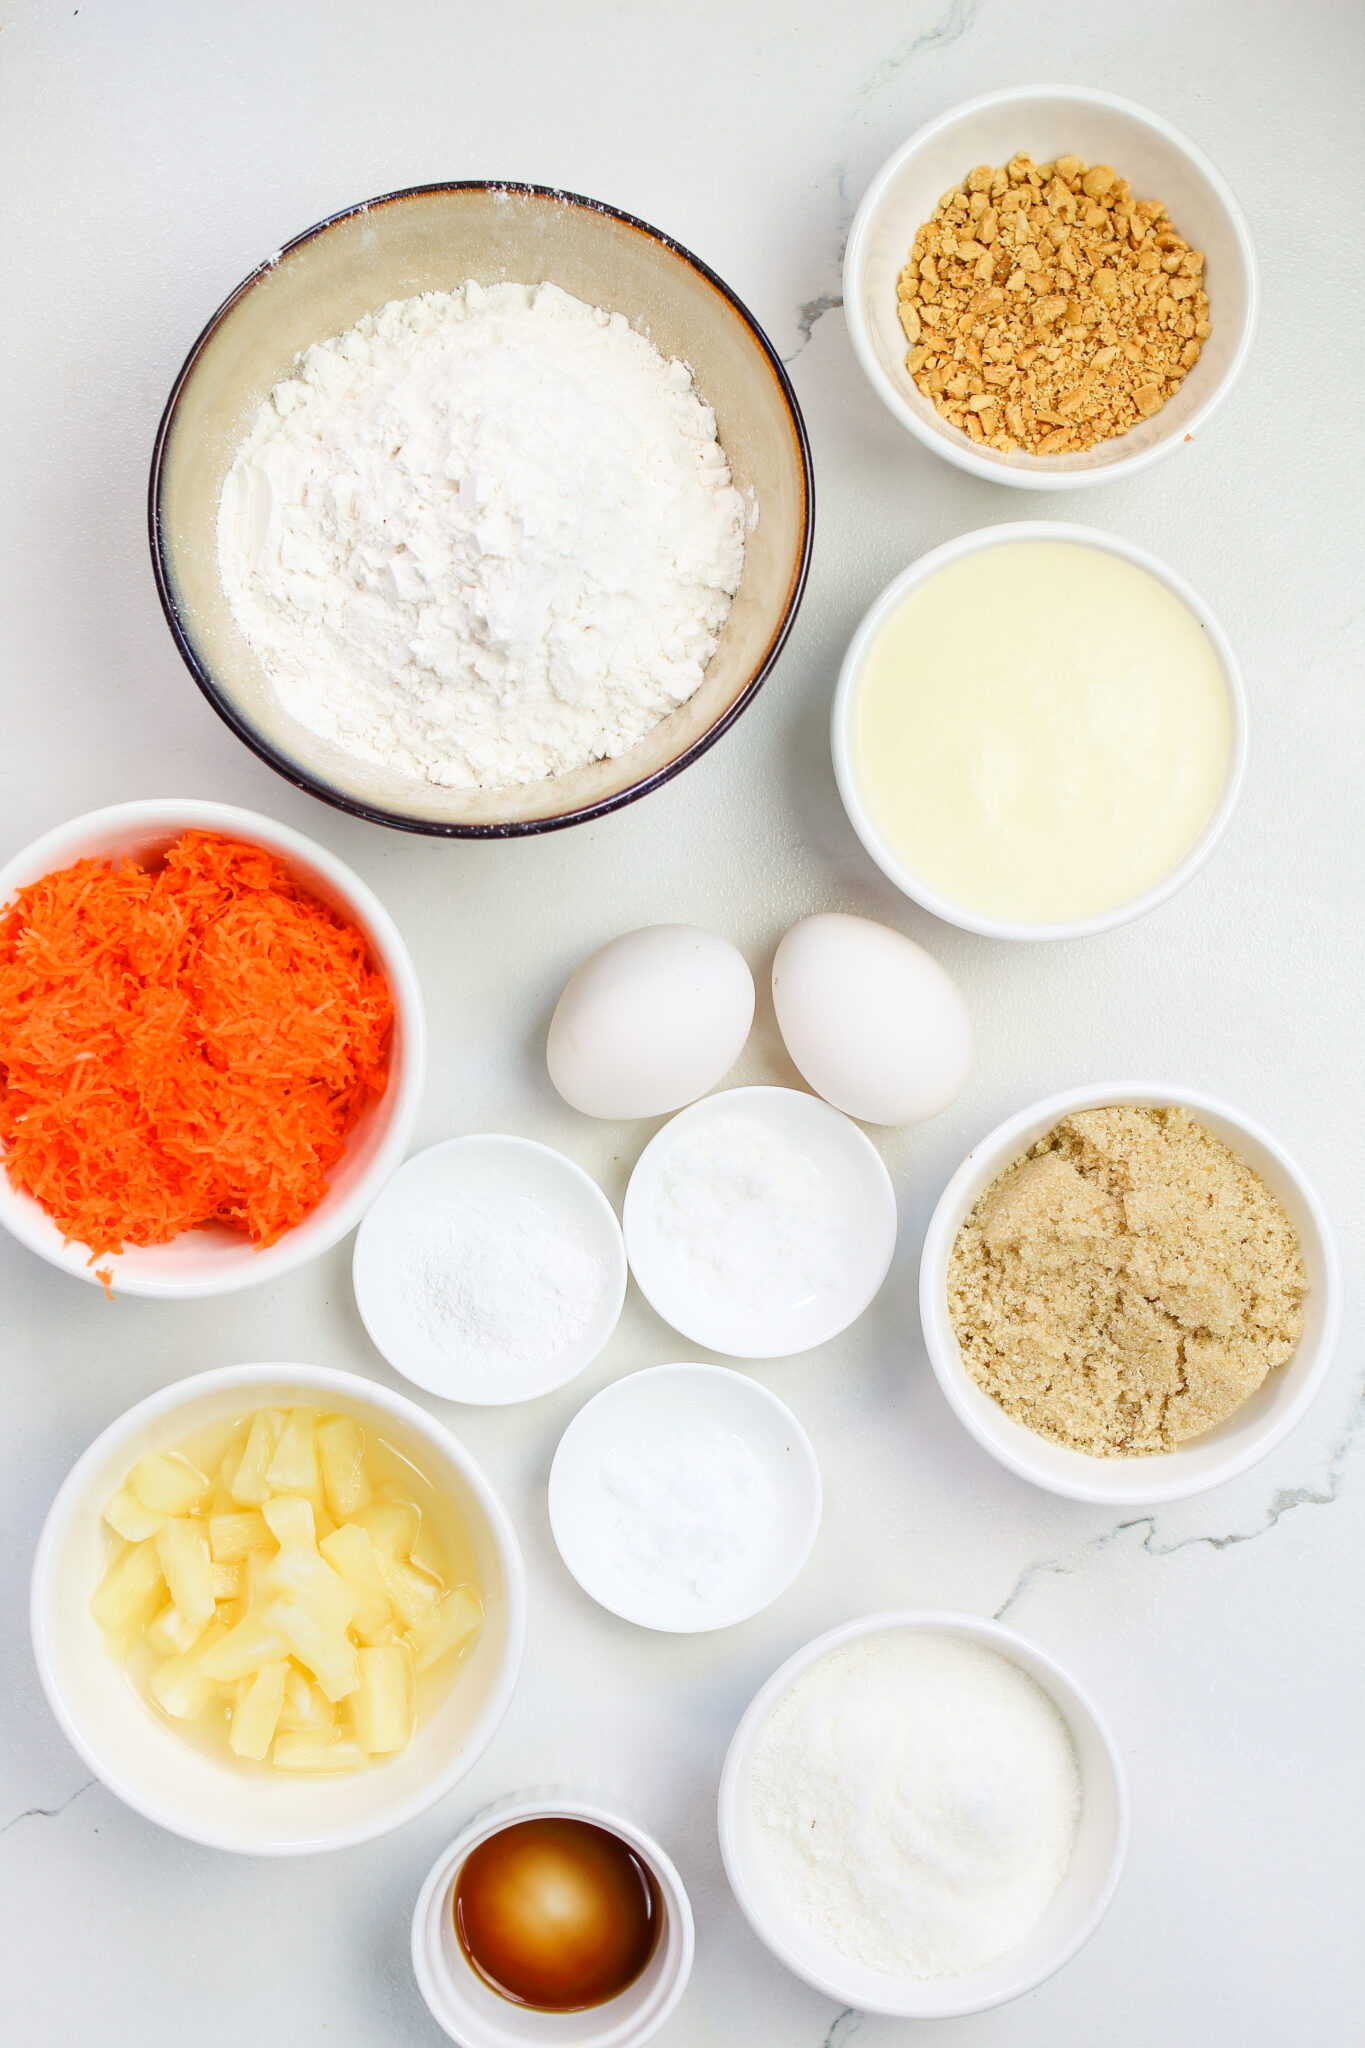 Ingredients for making cupcakes with carrot